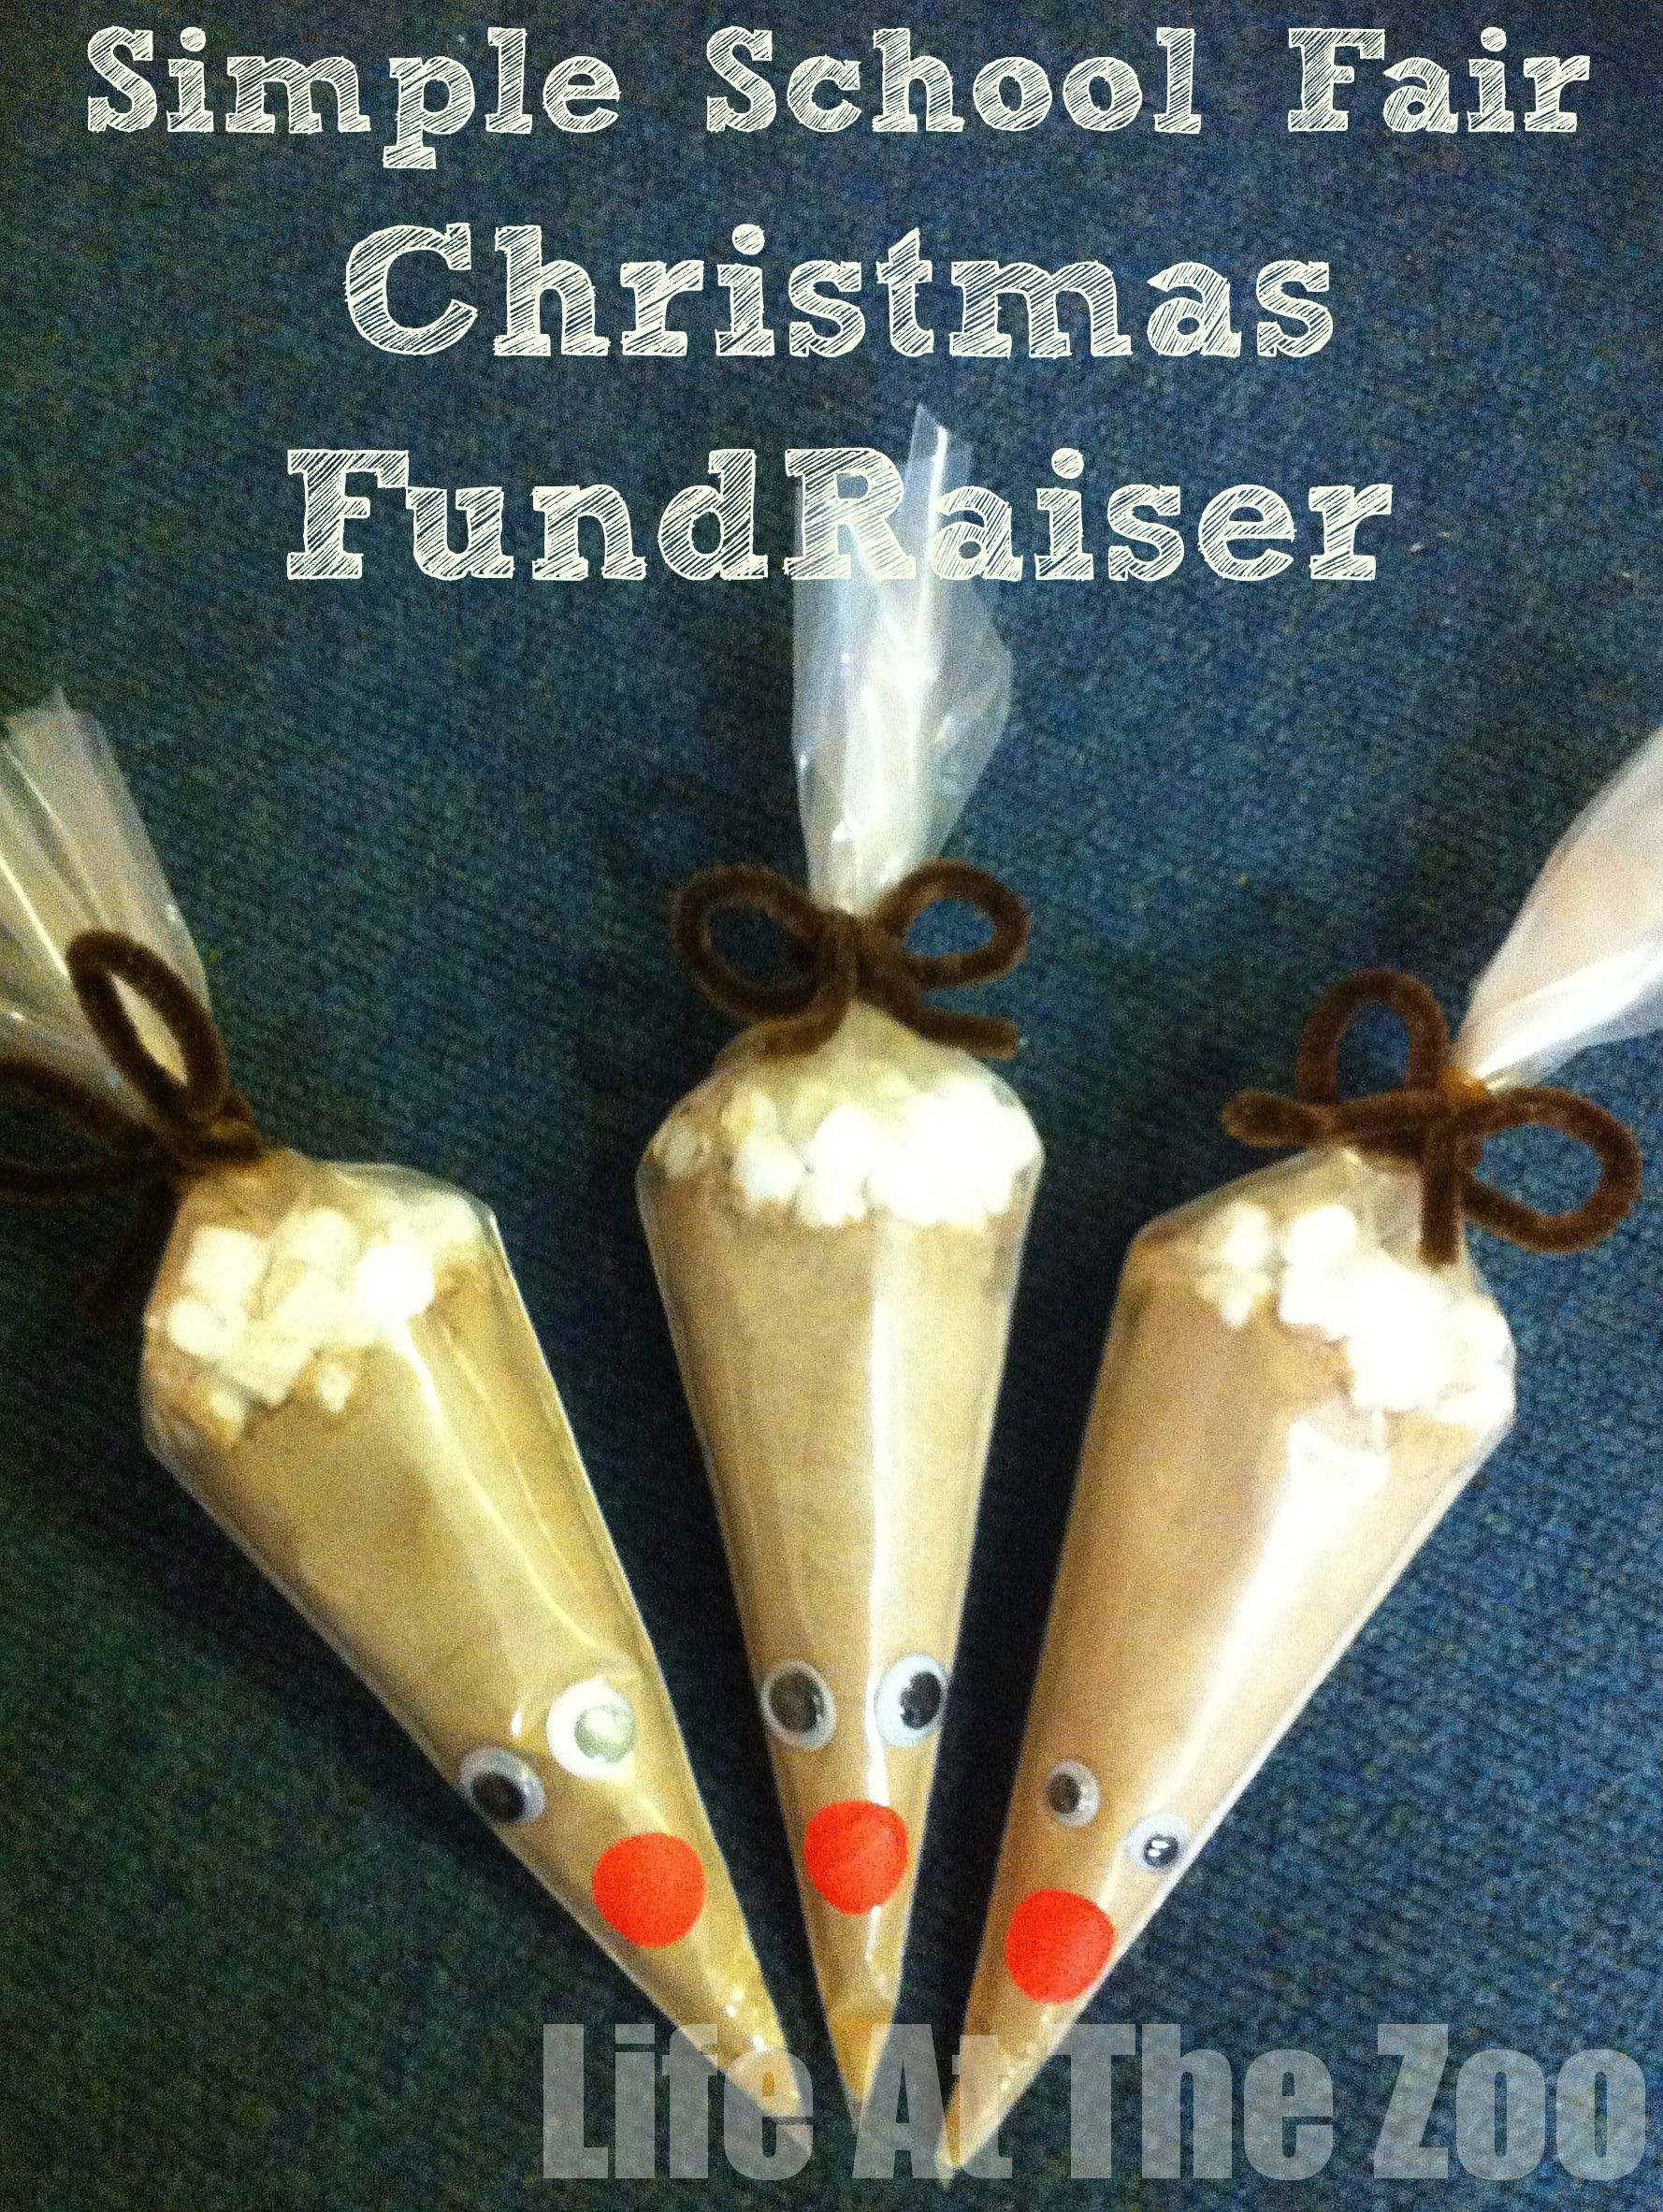 Making christmas decorations in school - Christmas Fundraising Ideas These Would Also Make A Great Craft Activity That Children Could Then